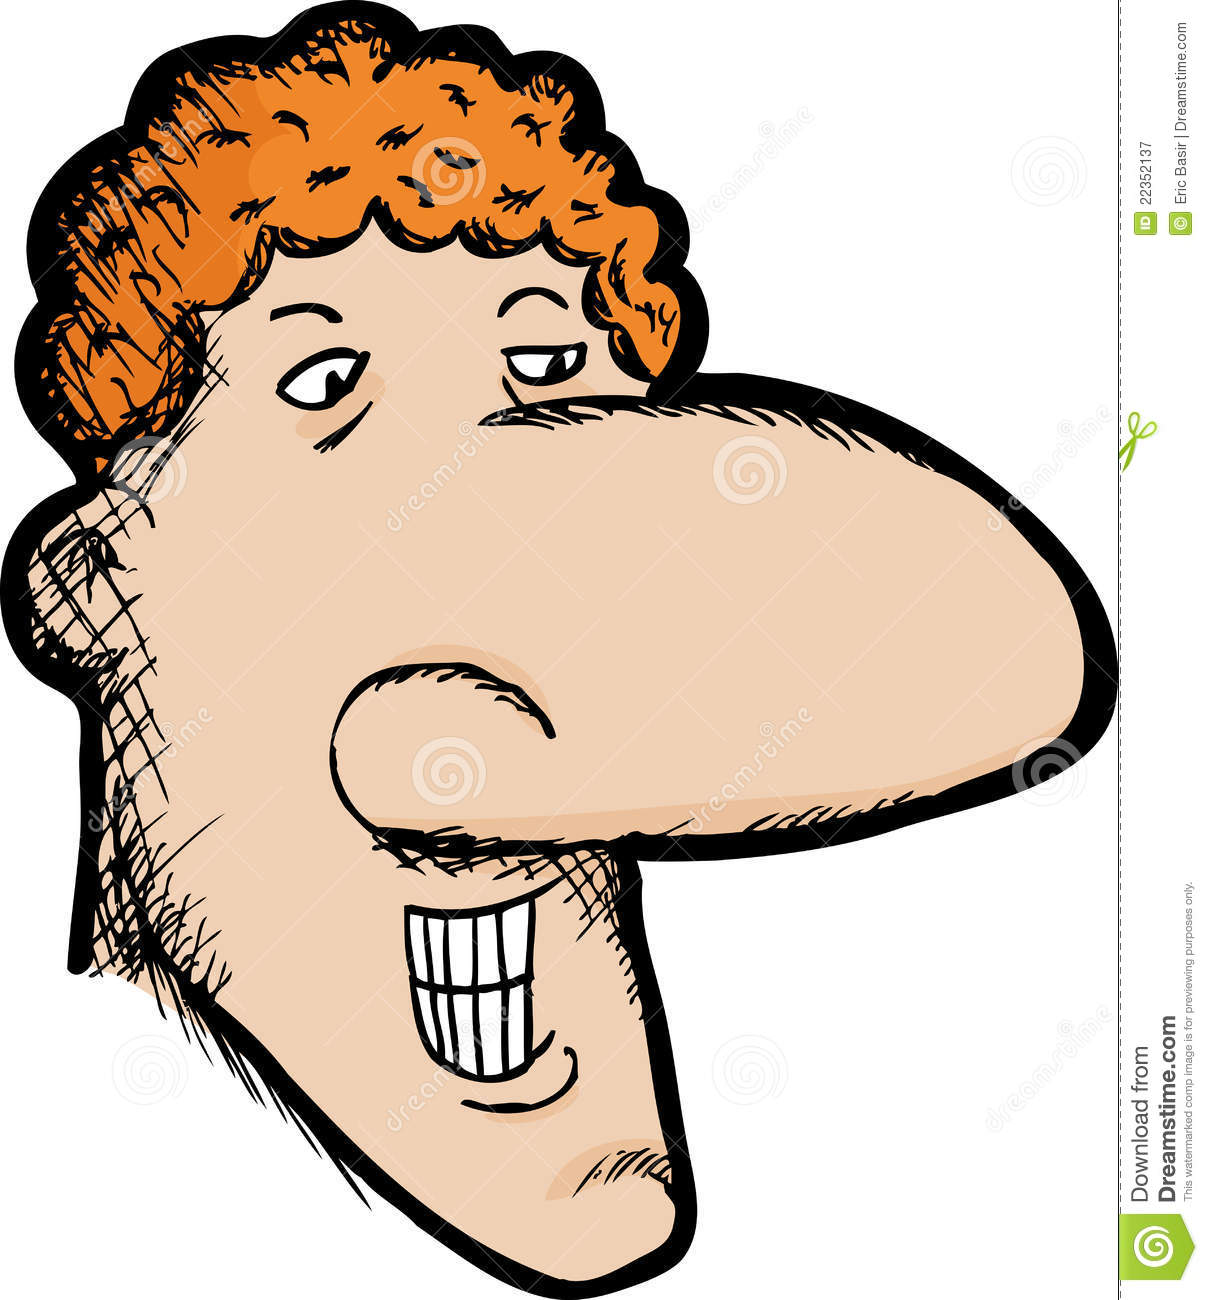 Cartoon Characters With Big Noses : Big nose royalty free stock photography image